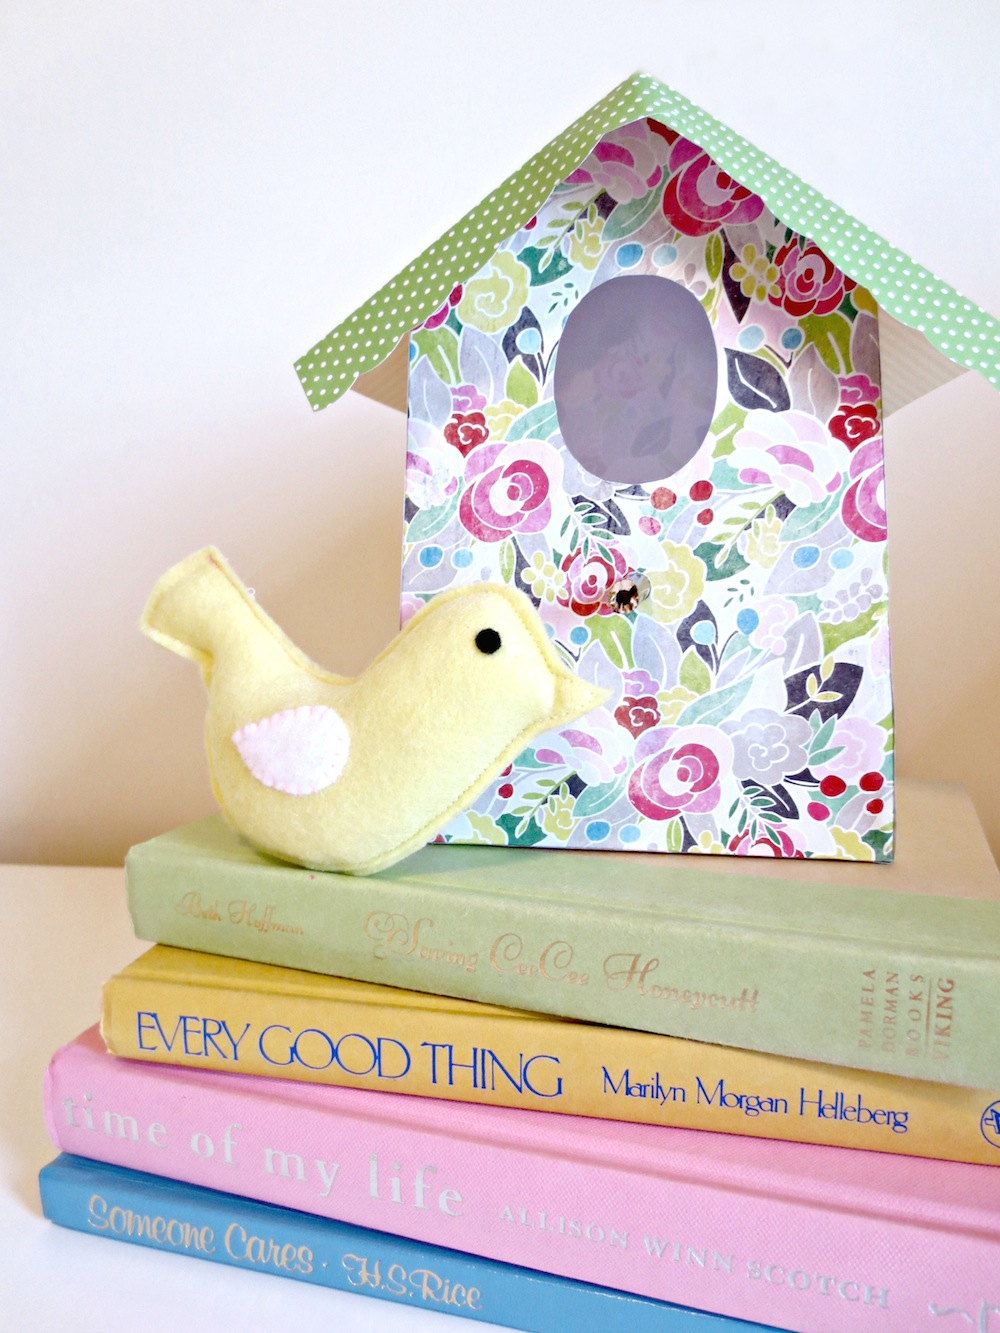 For Templates To Make Your Own Paper Birdhouses Check Out Kamis Blog Sweetcharliblogspot